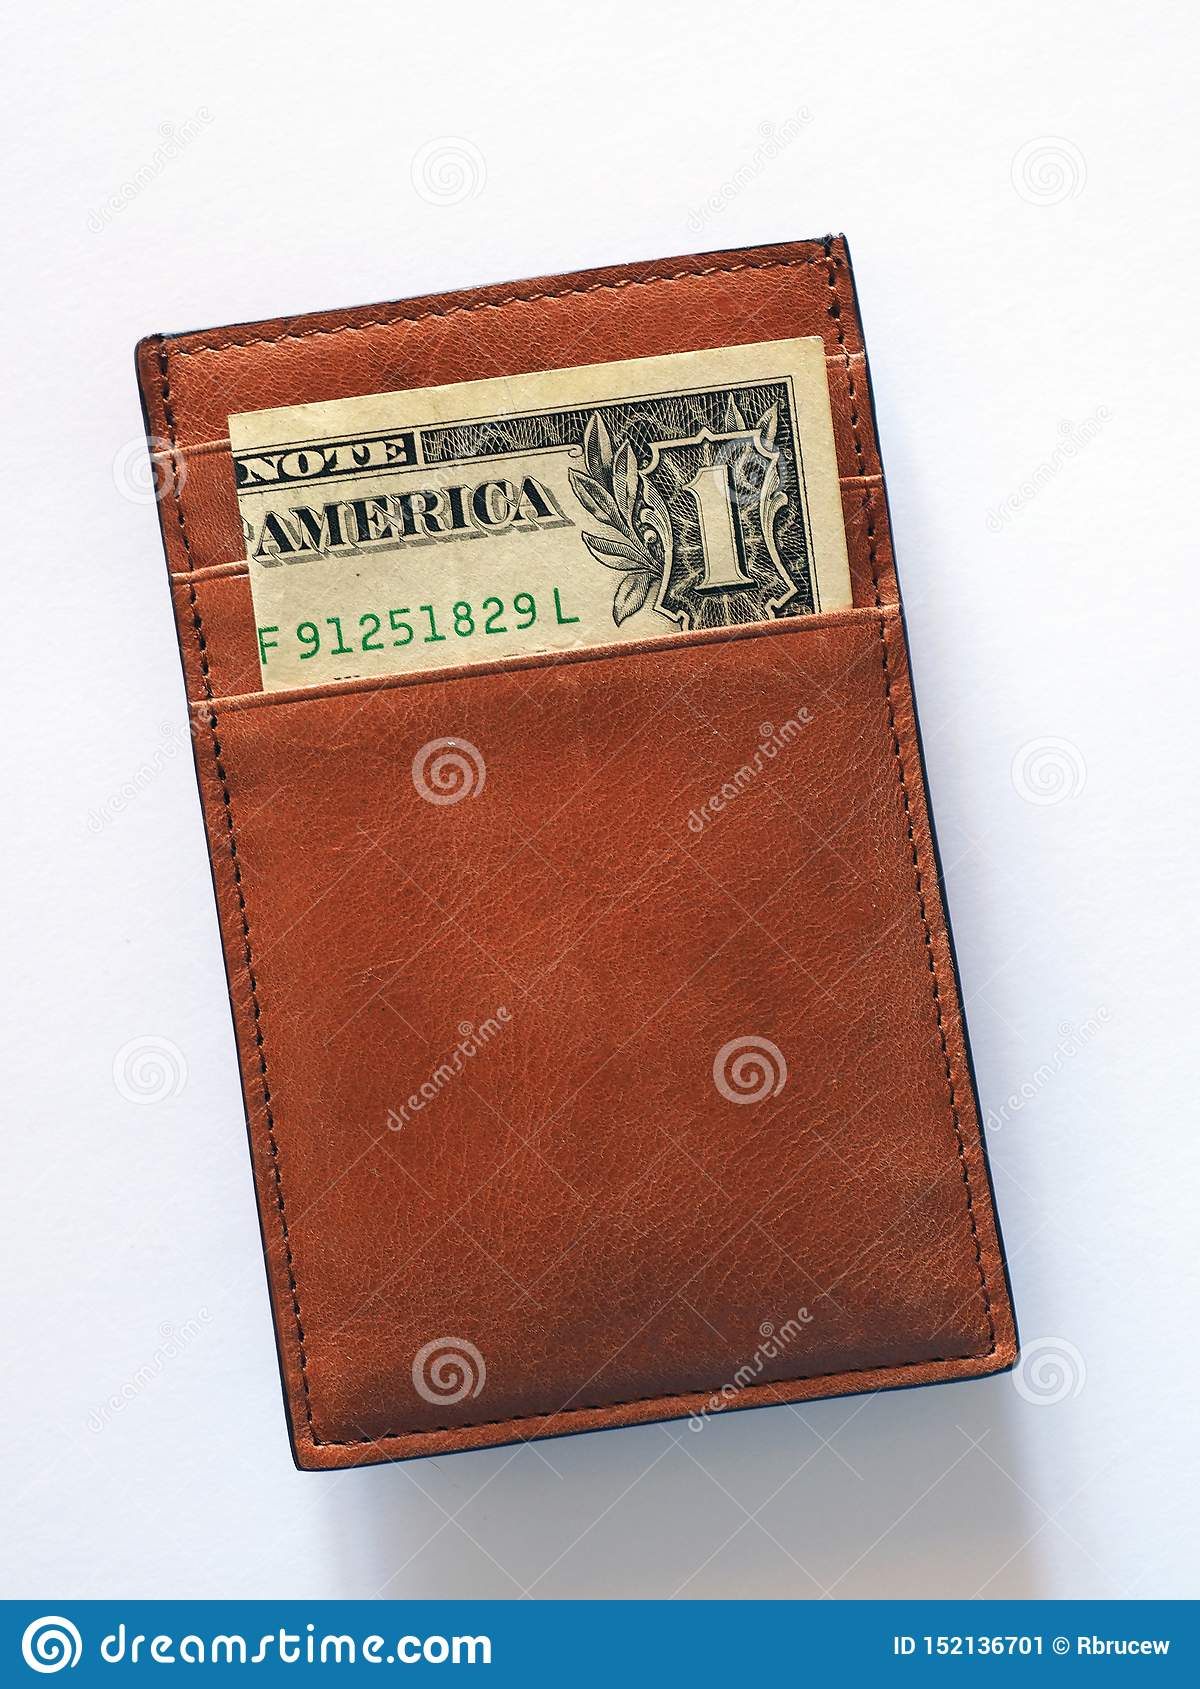 Only One Dollar Bill in Card Wallet